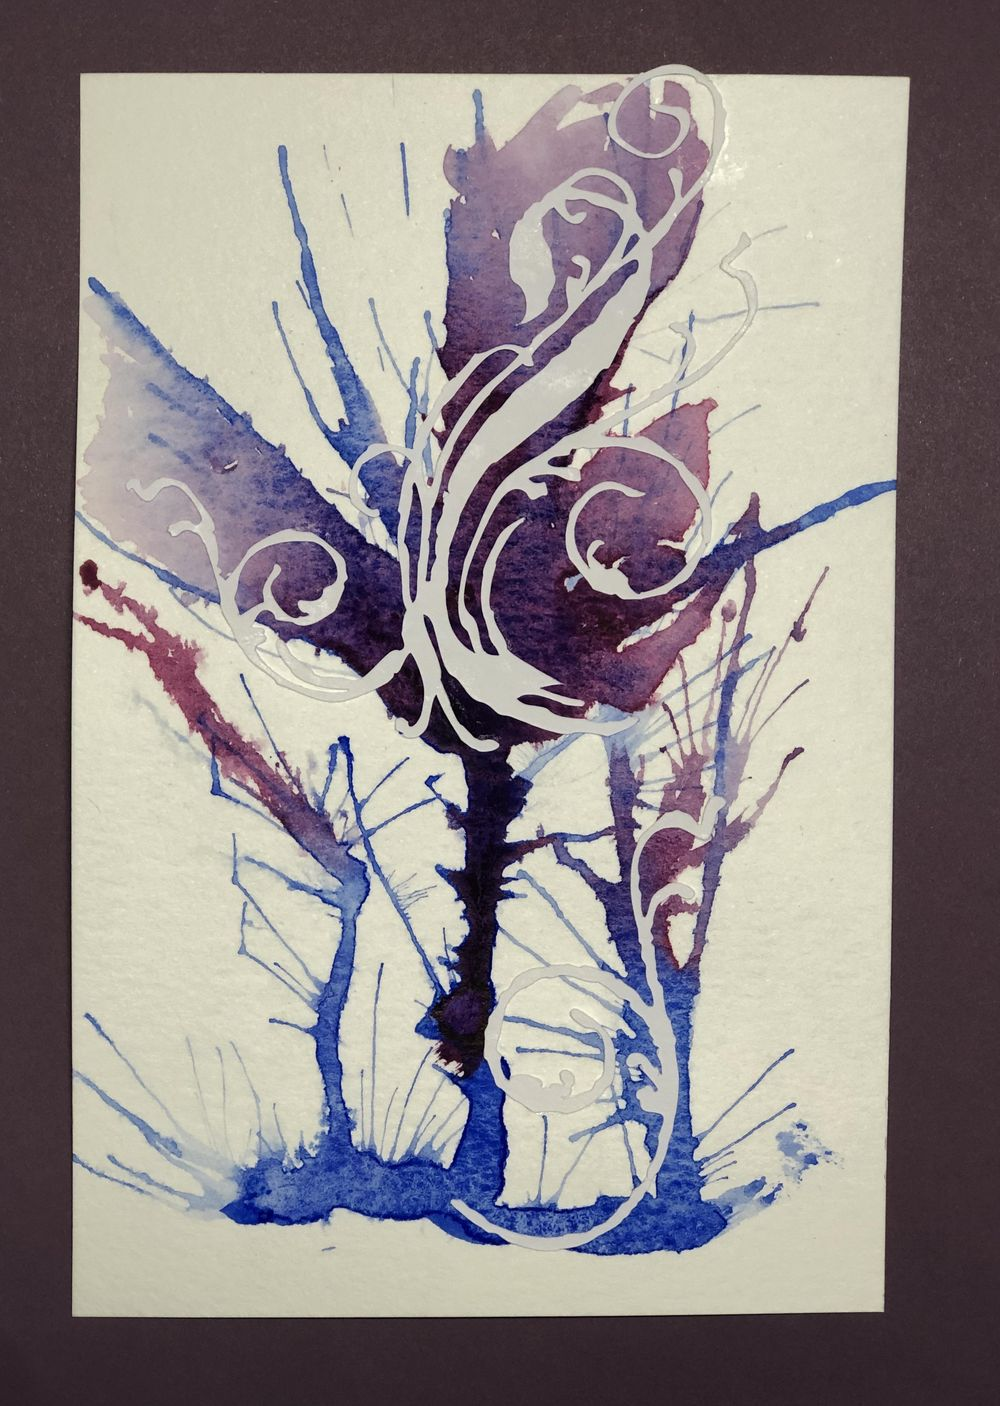 Wild Watercolors - image 2 - student project